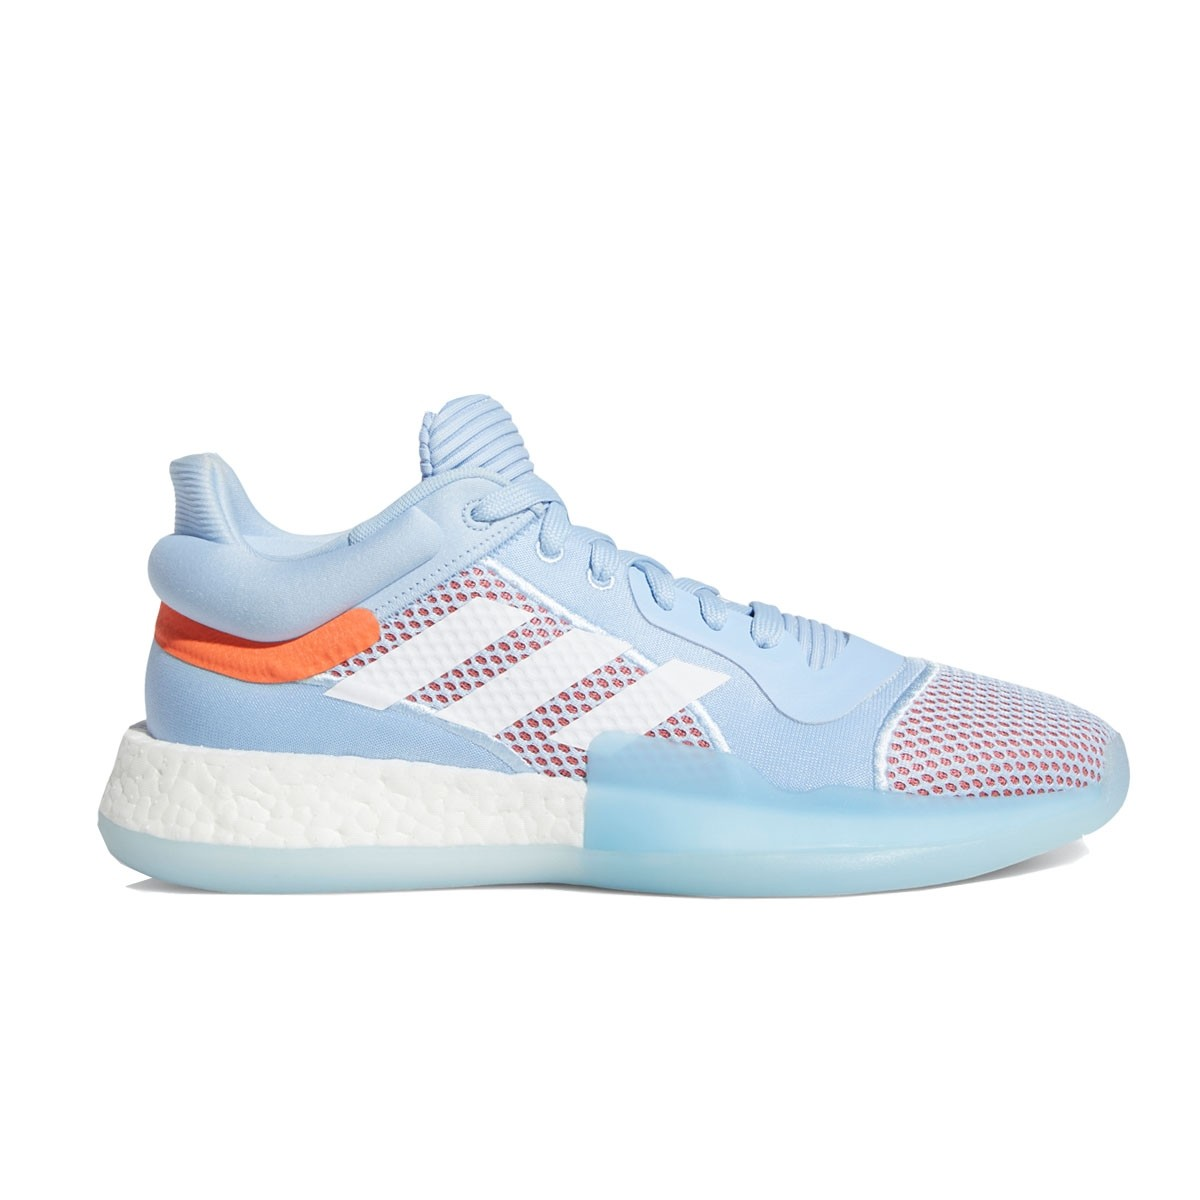 ADIDAS Marquee Boost Low 'Glow Blue'